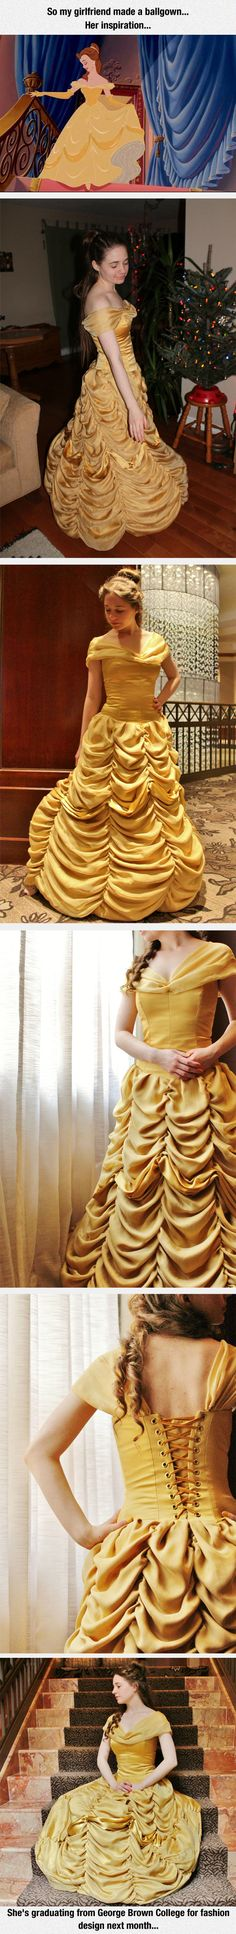 Amazing Dress Inspired By A Disney Princess